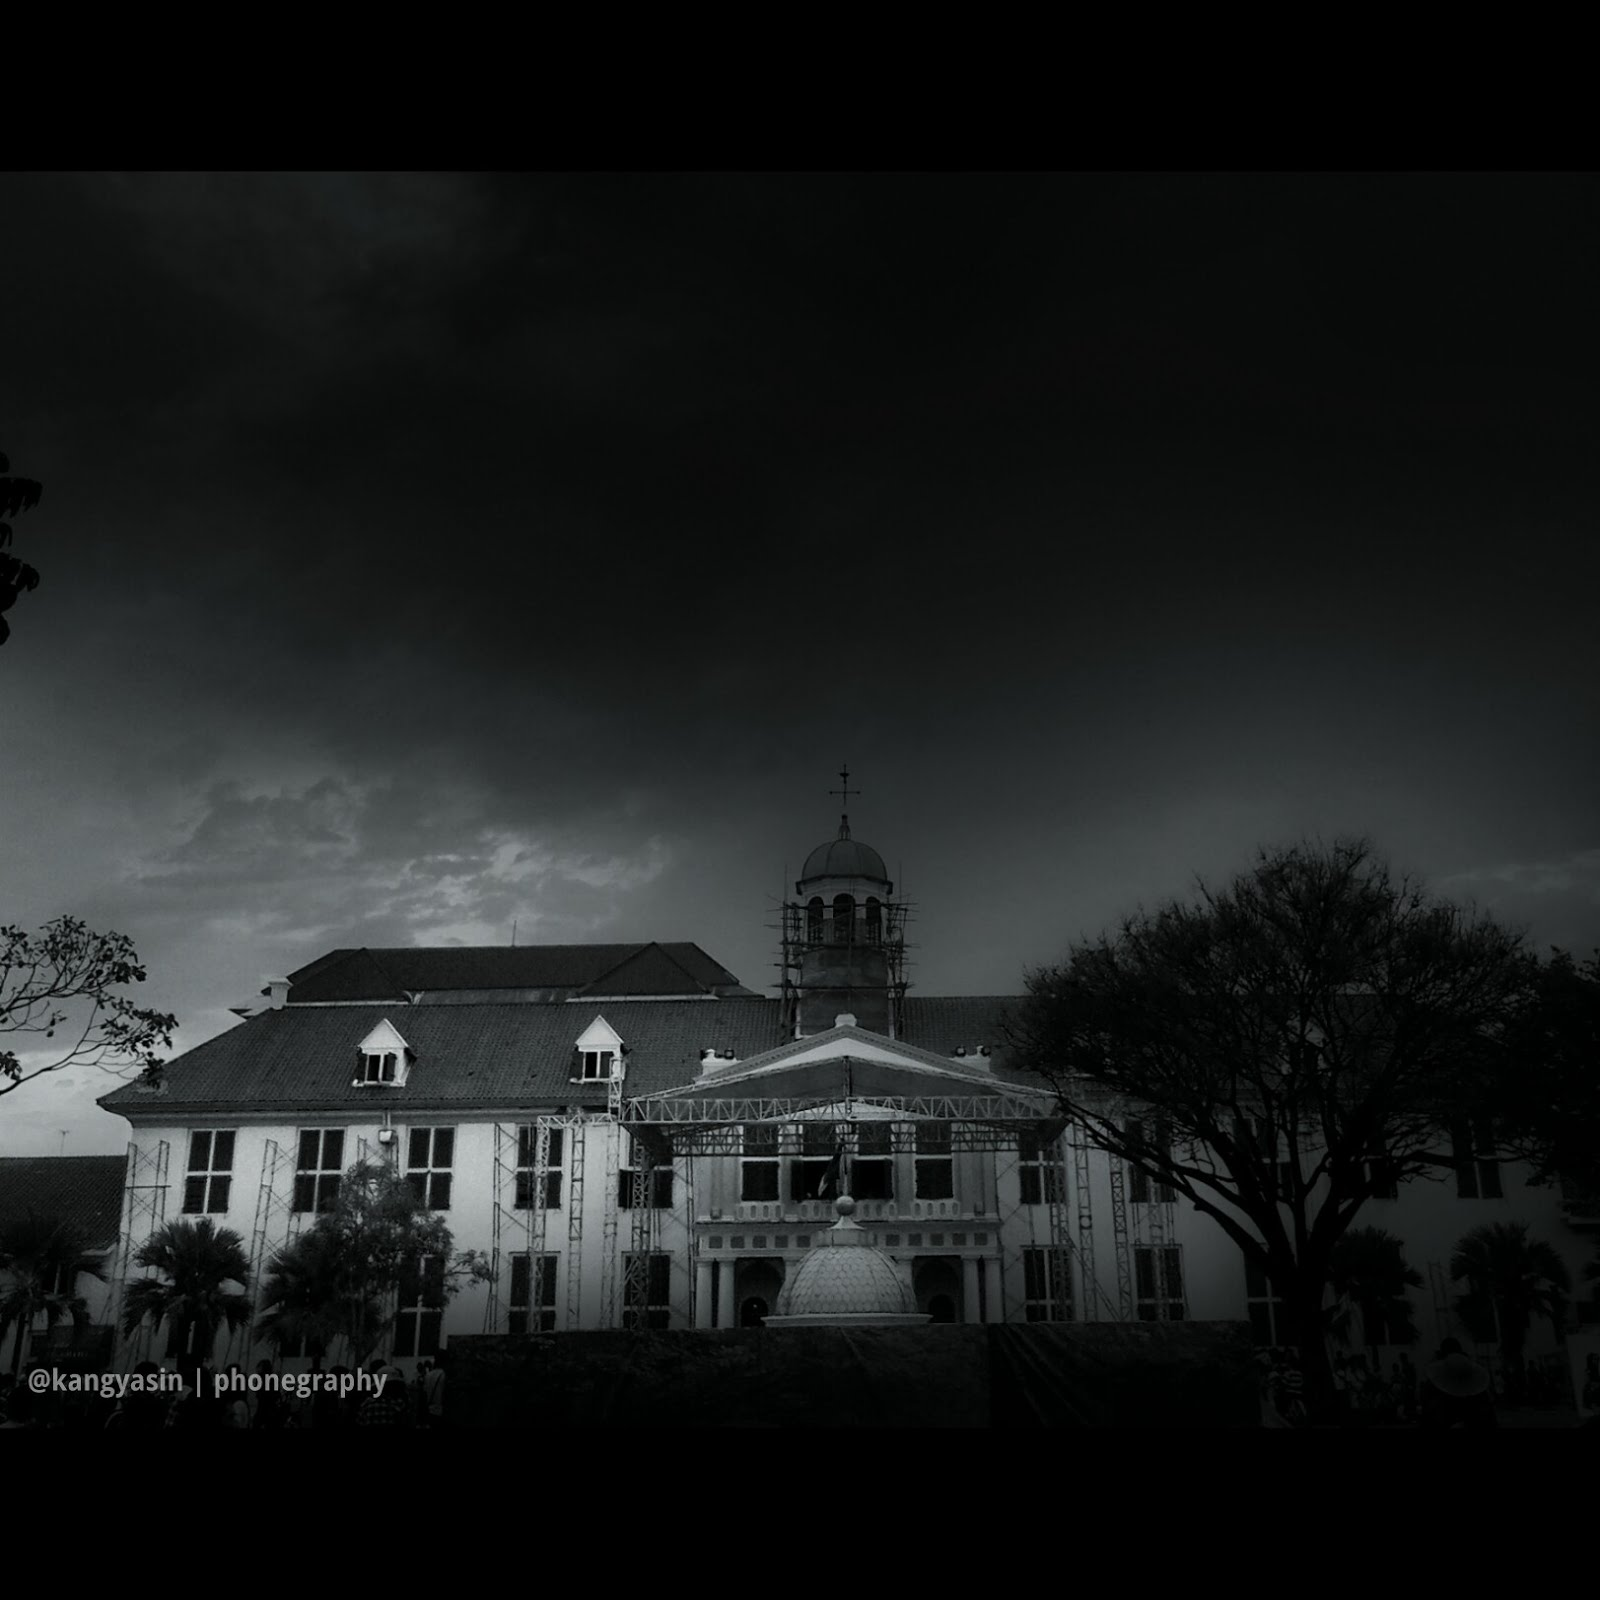 Phonegraphy dark black and white by kang yasin photography